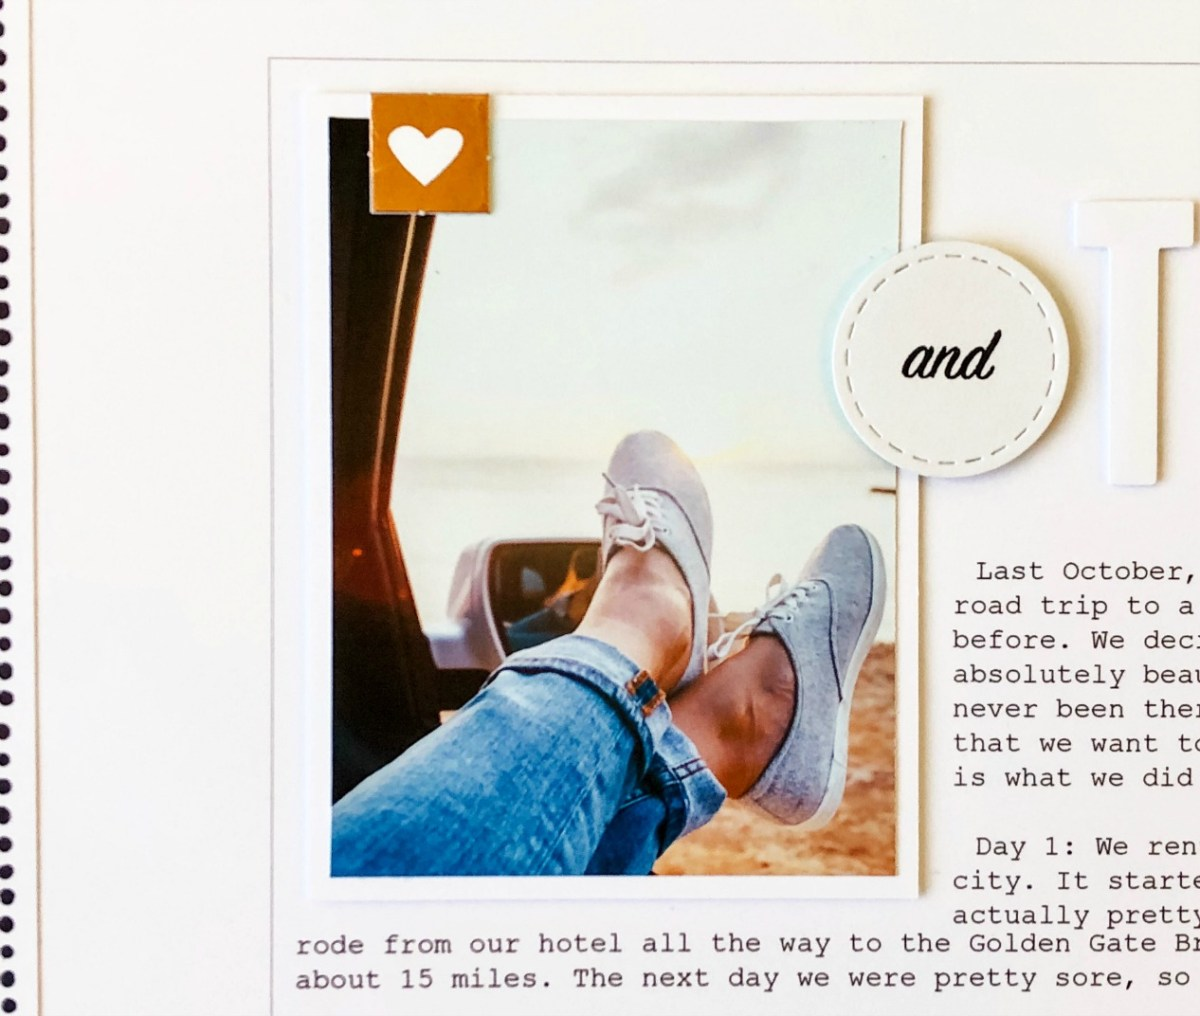 Millenial-style Scrapbooking #ctmh #closetomyheart #millenial #scrapbooking #millenialmemorykeeping #memorykeeping #storytelling #preservingmemories #simplicity #whitespace #minimalism #minimalist #minimalistic #carwindow #feet #andthen